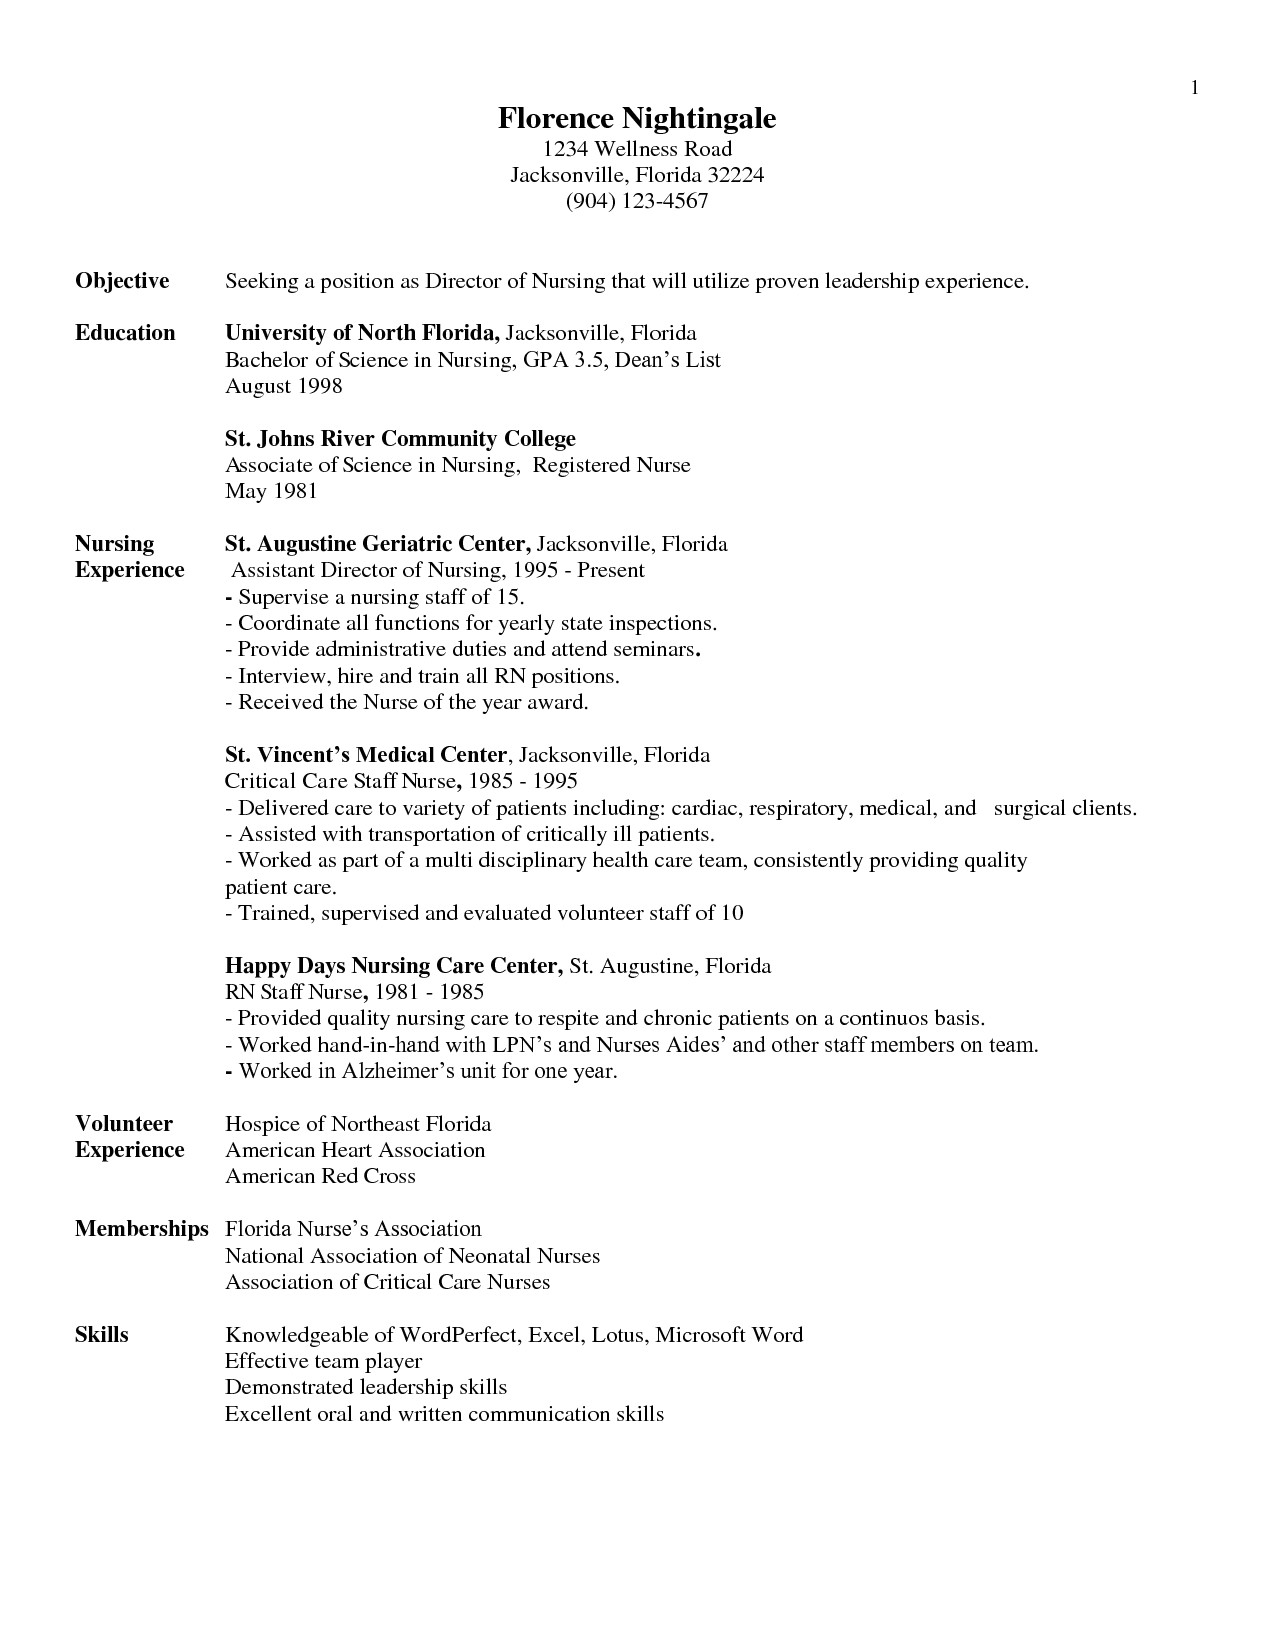 kitchen hand resume and cover letter